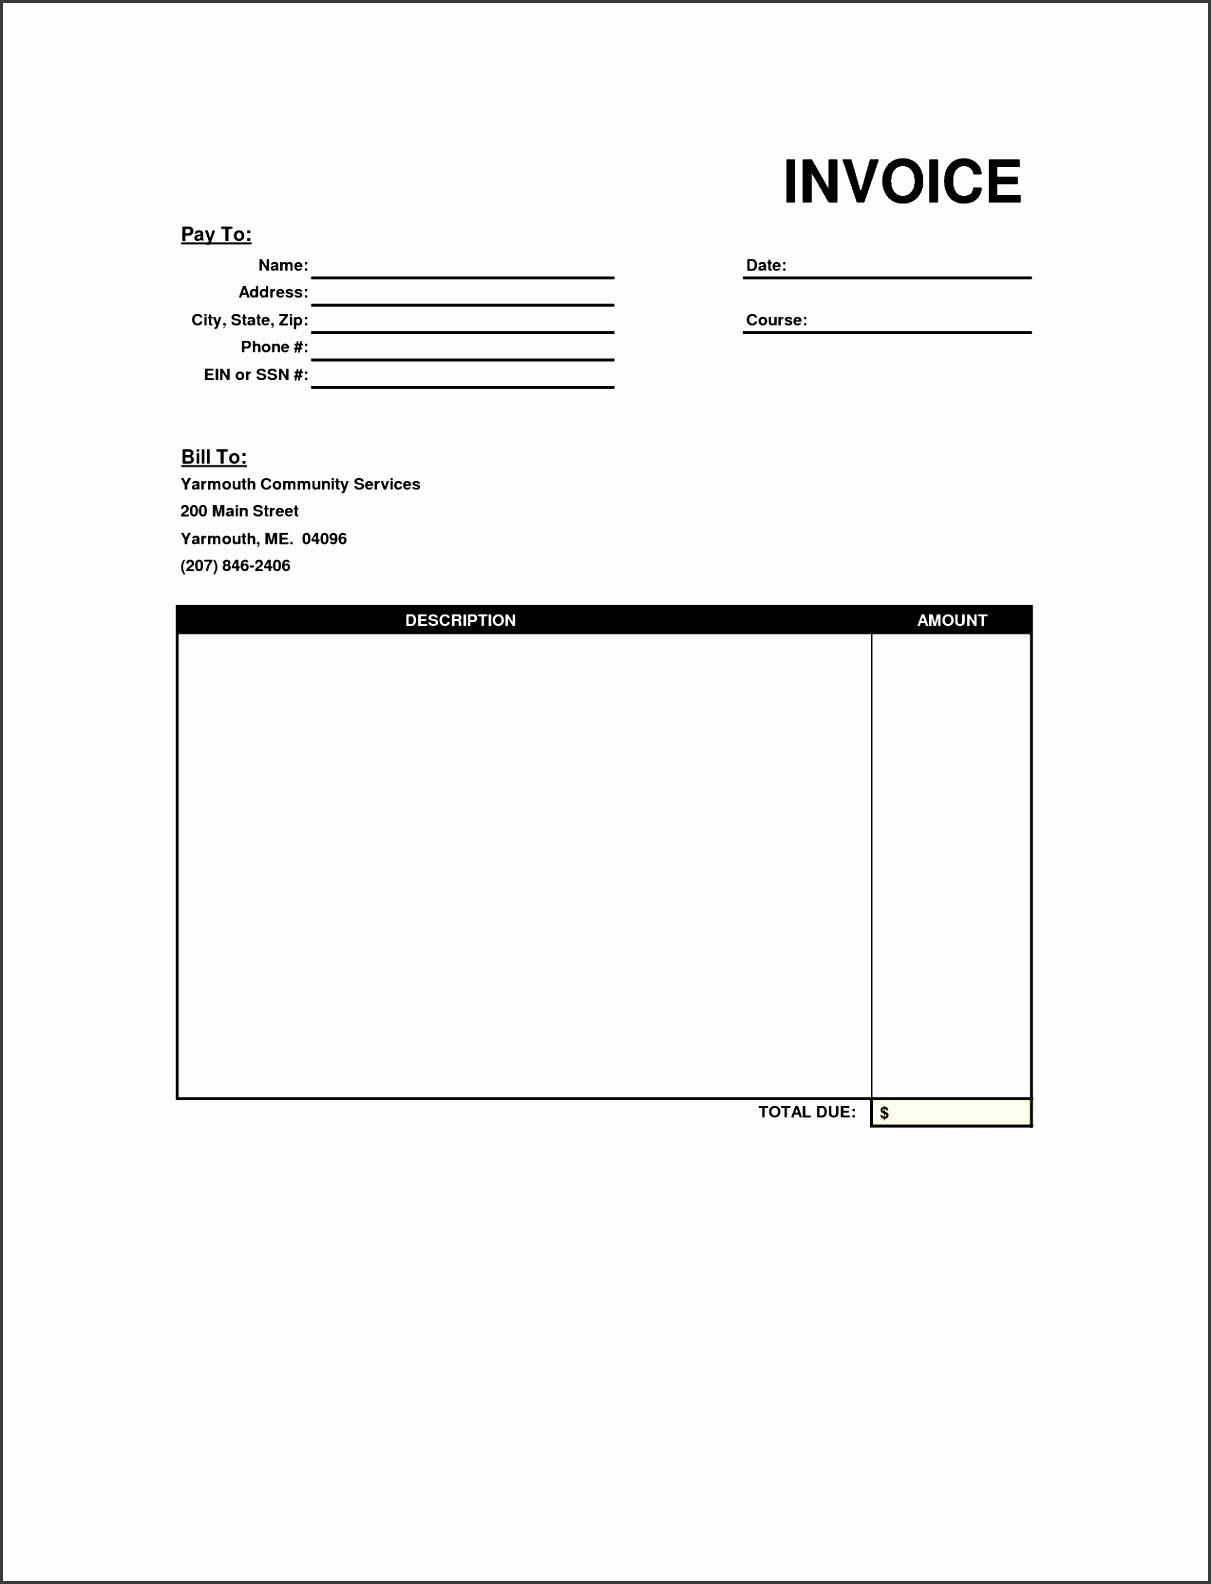 Blank Invoice Templates Uk